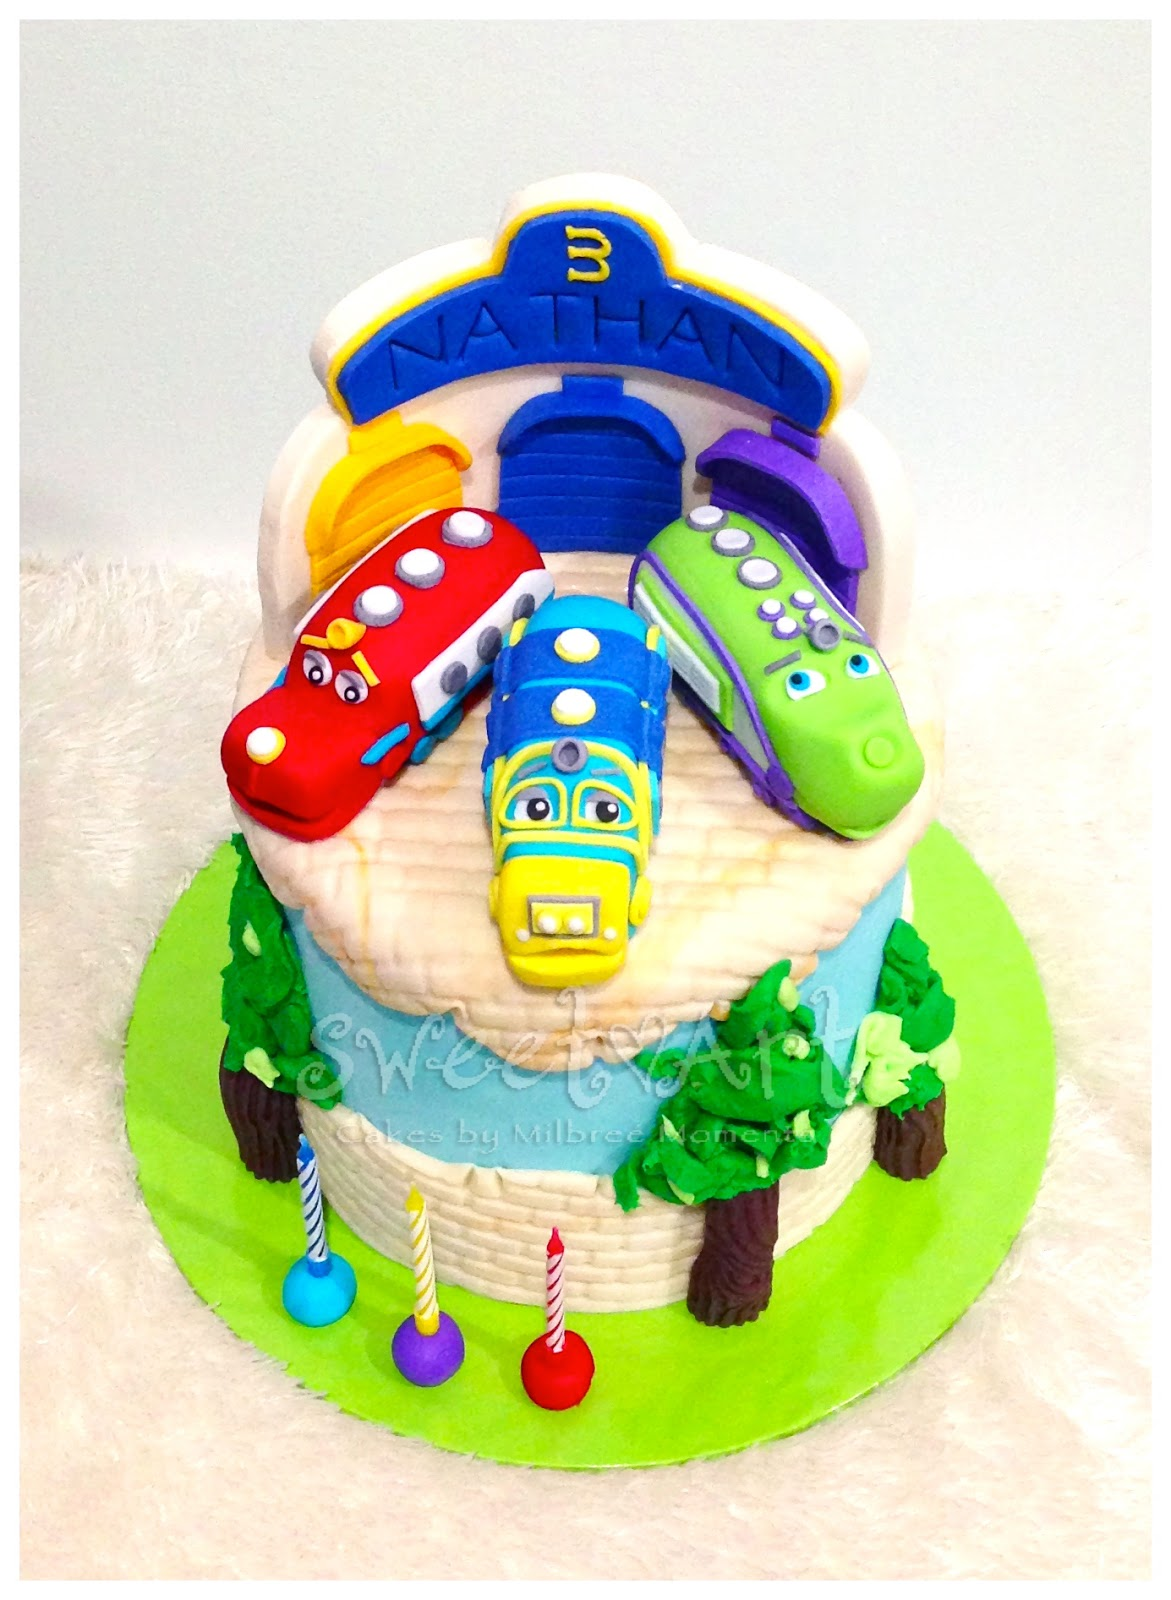 Sweet Art Cakes by Milbre Moments Nathans Chuggington 3rd